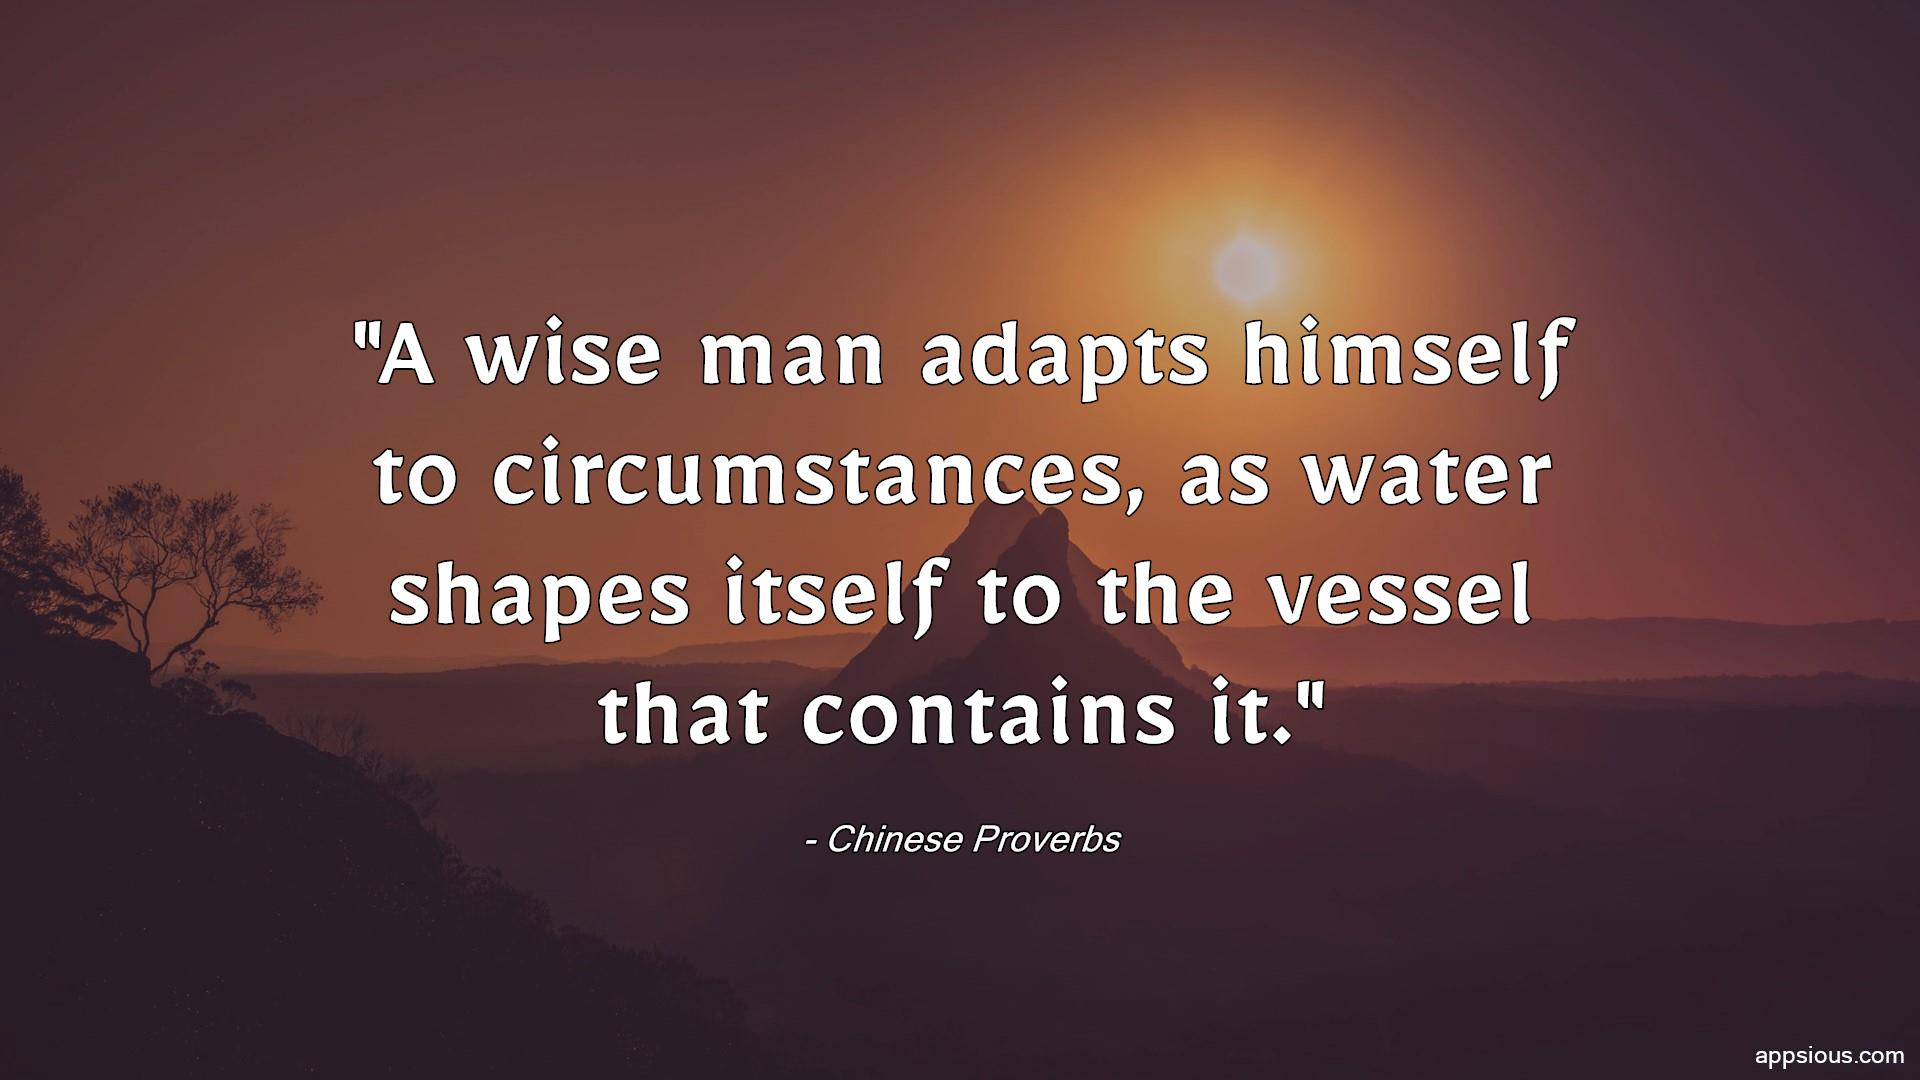 A wise man adapts himself to circumstances, as water shapes itself to the vessel that contains it.